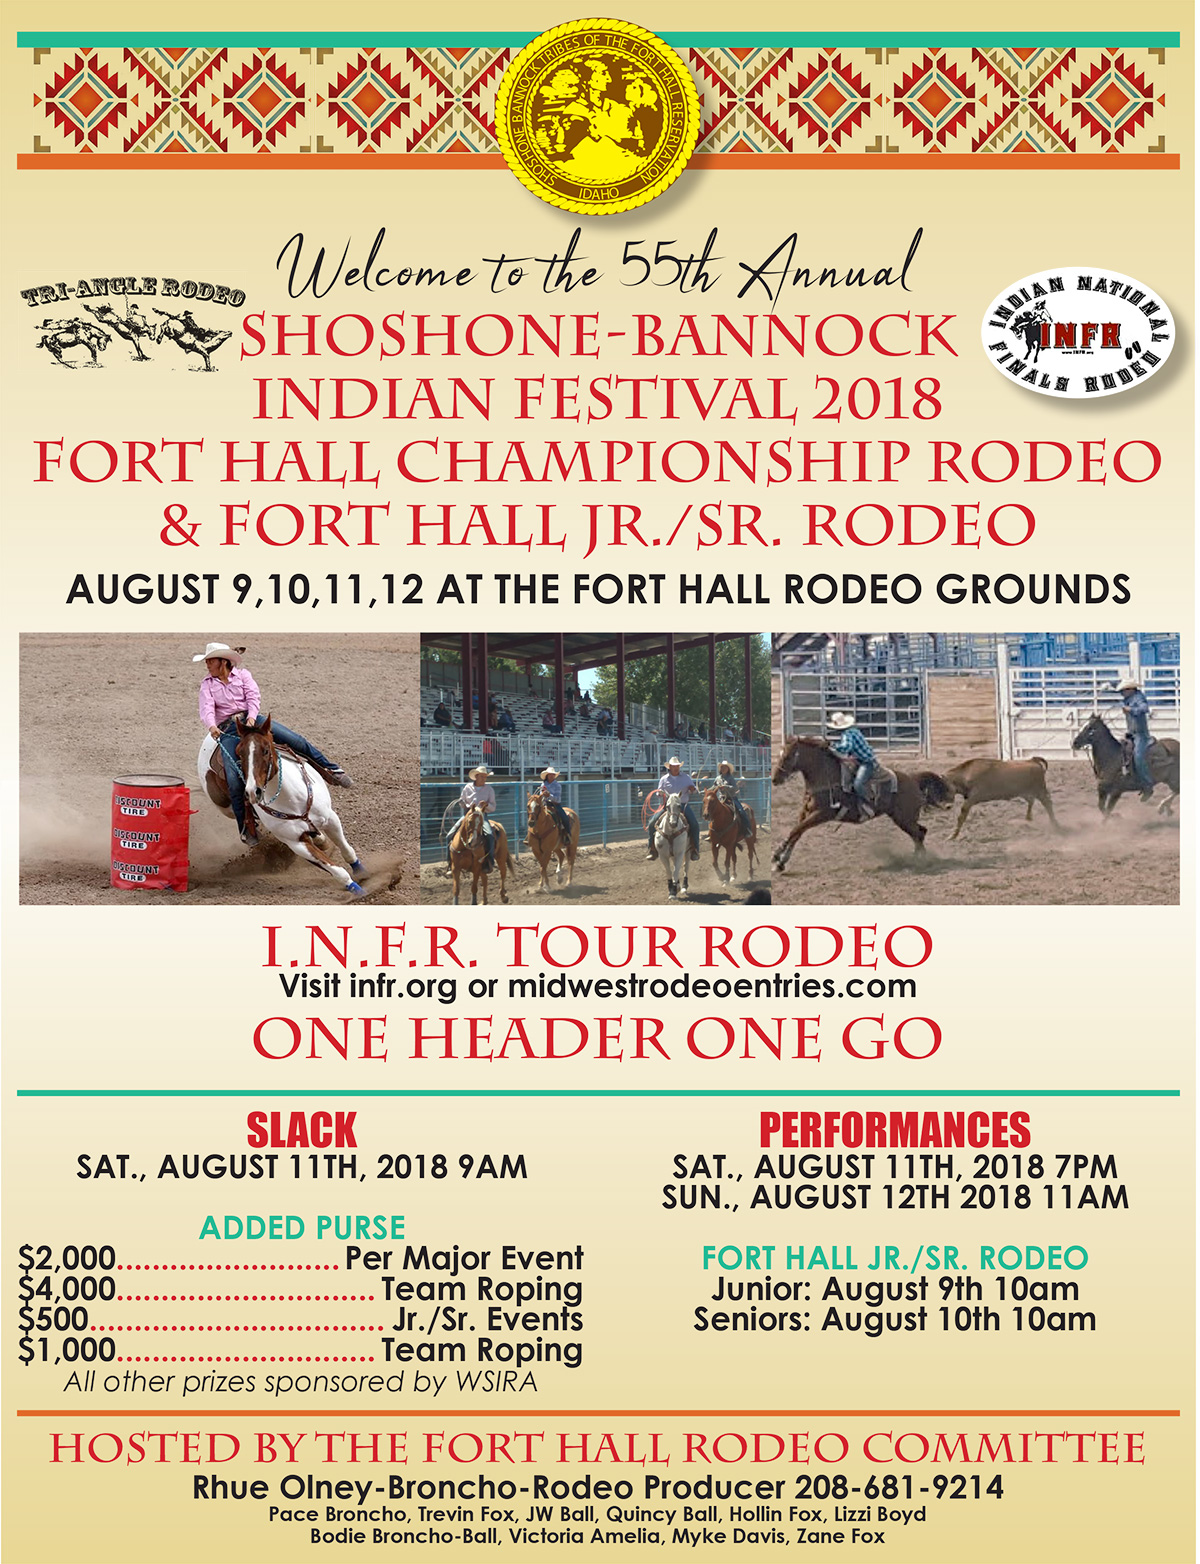 INFR Tour Rodeo